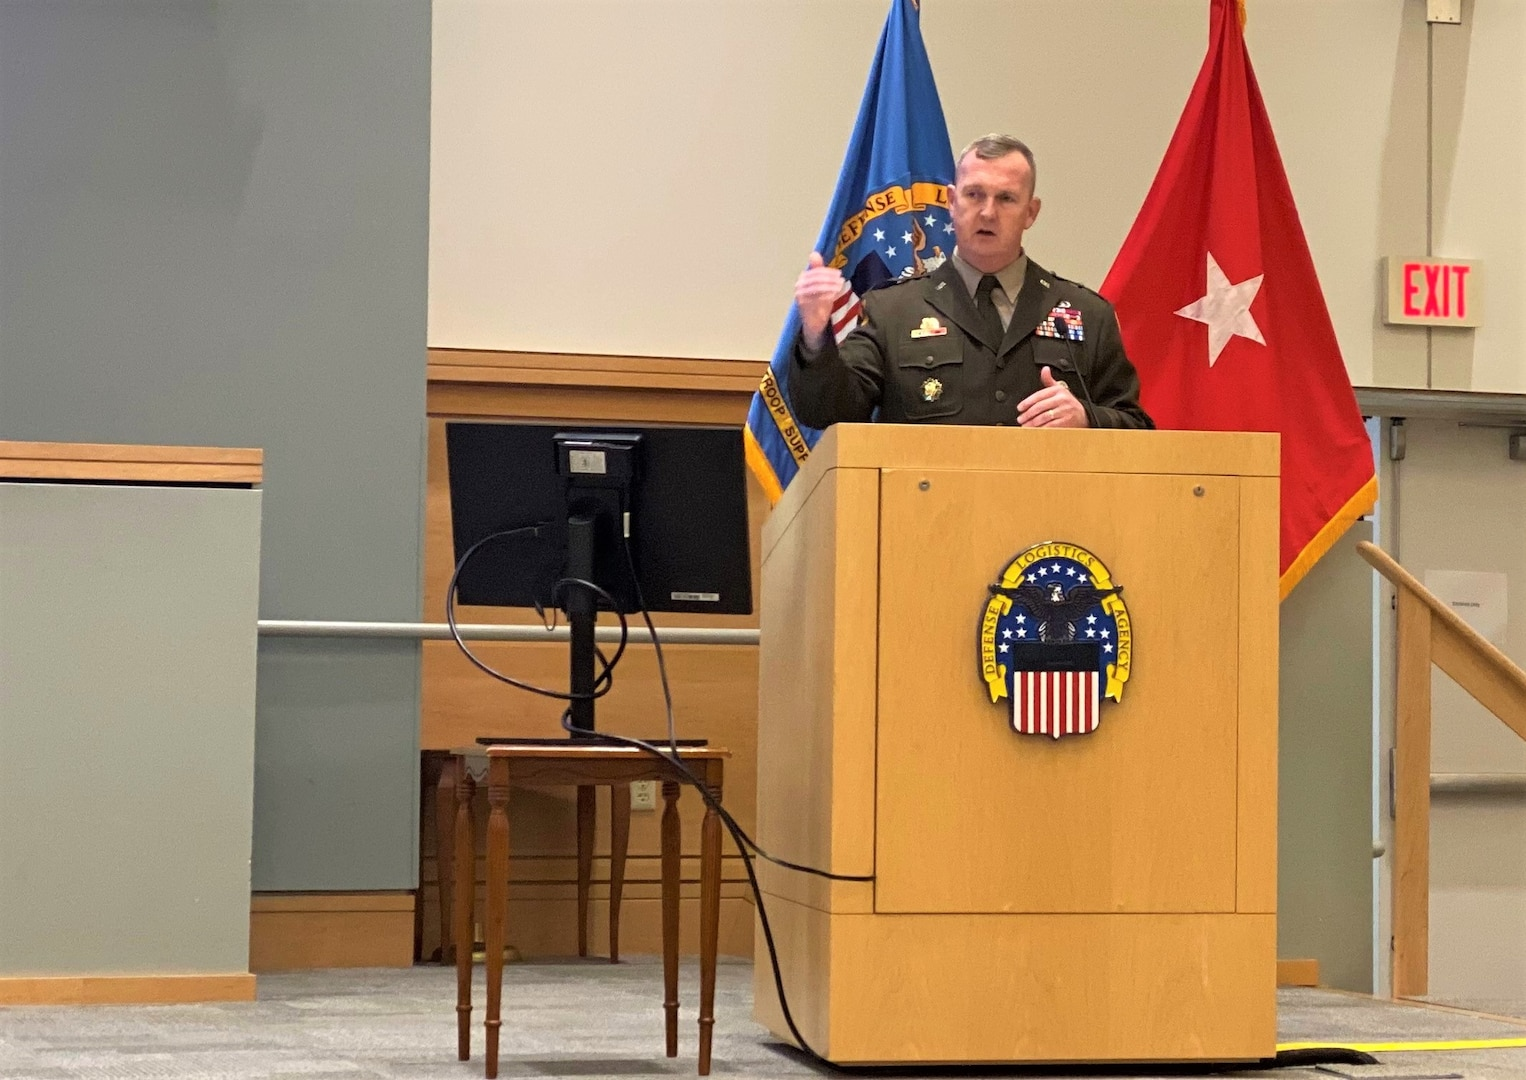 DLA Troop Support Commander Army Brig. Gen. Eric P. Shirley hosted his first town hall June 25, 2021 in Philadelphia, Pa. During the event Shirley discussed his priorities and vision for leadership, including mission accomplishment and everyday enterprise excellence.